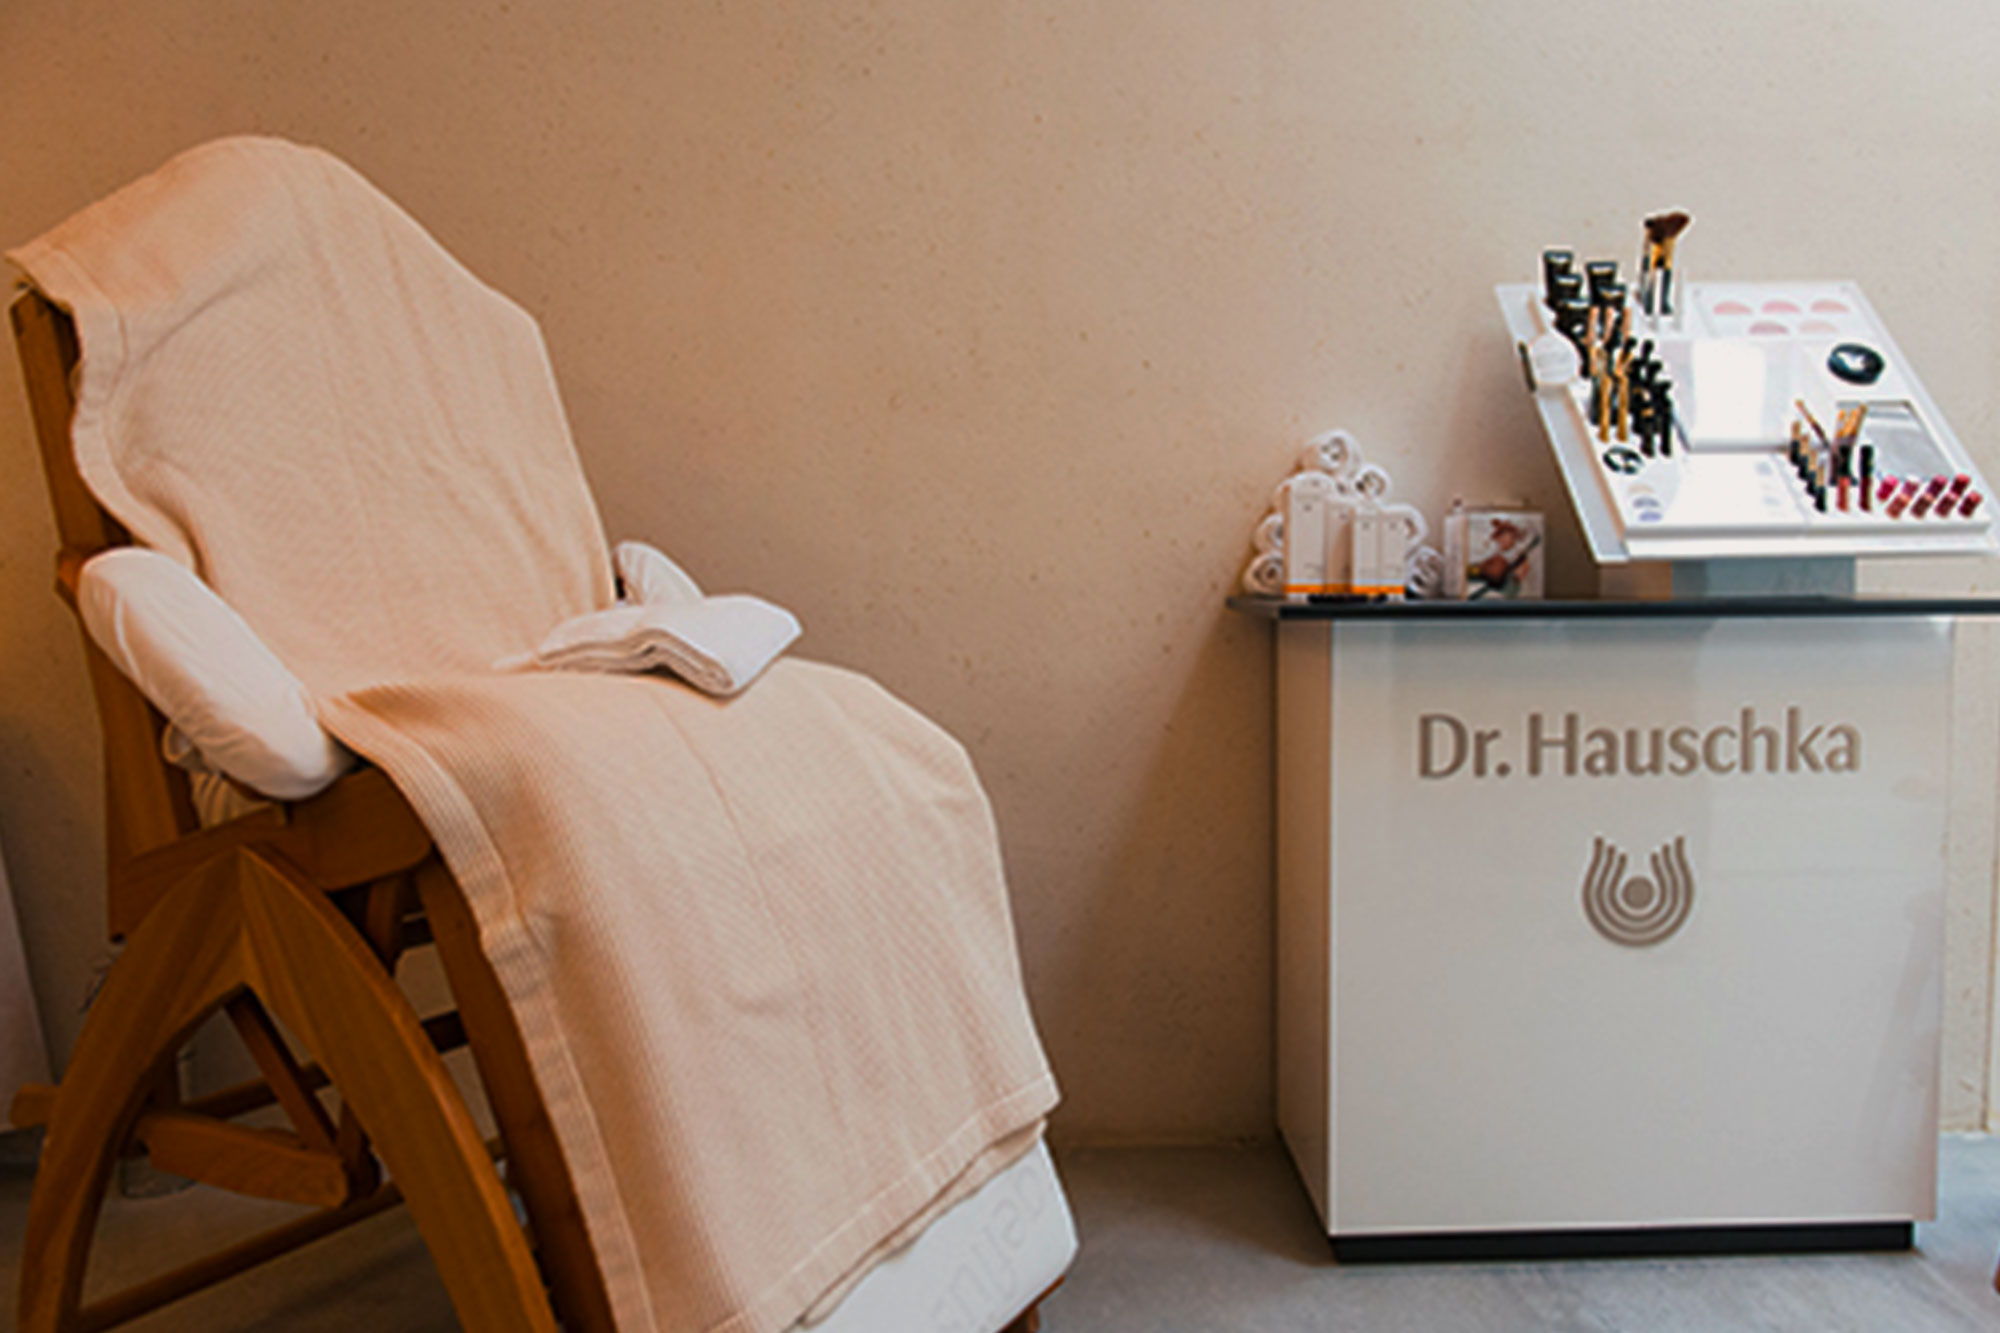 Organic Soap - All of the soaps and body products at The Conscious Club are organic. In the showers you can find shower cream and near the washbasin you can find hand lotion from Dr. Hauschka. The soap in the soap dispensers are also natural but from a different company called Vendor.